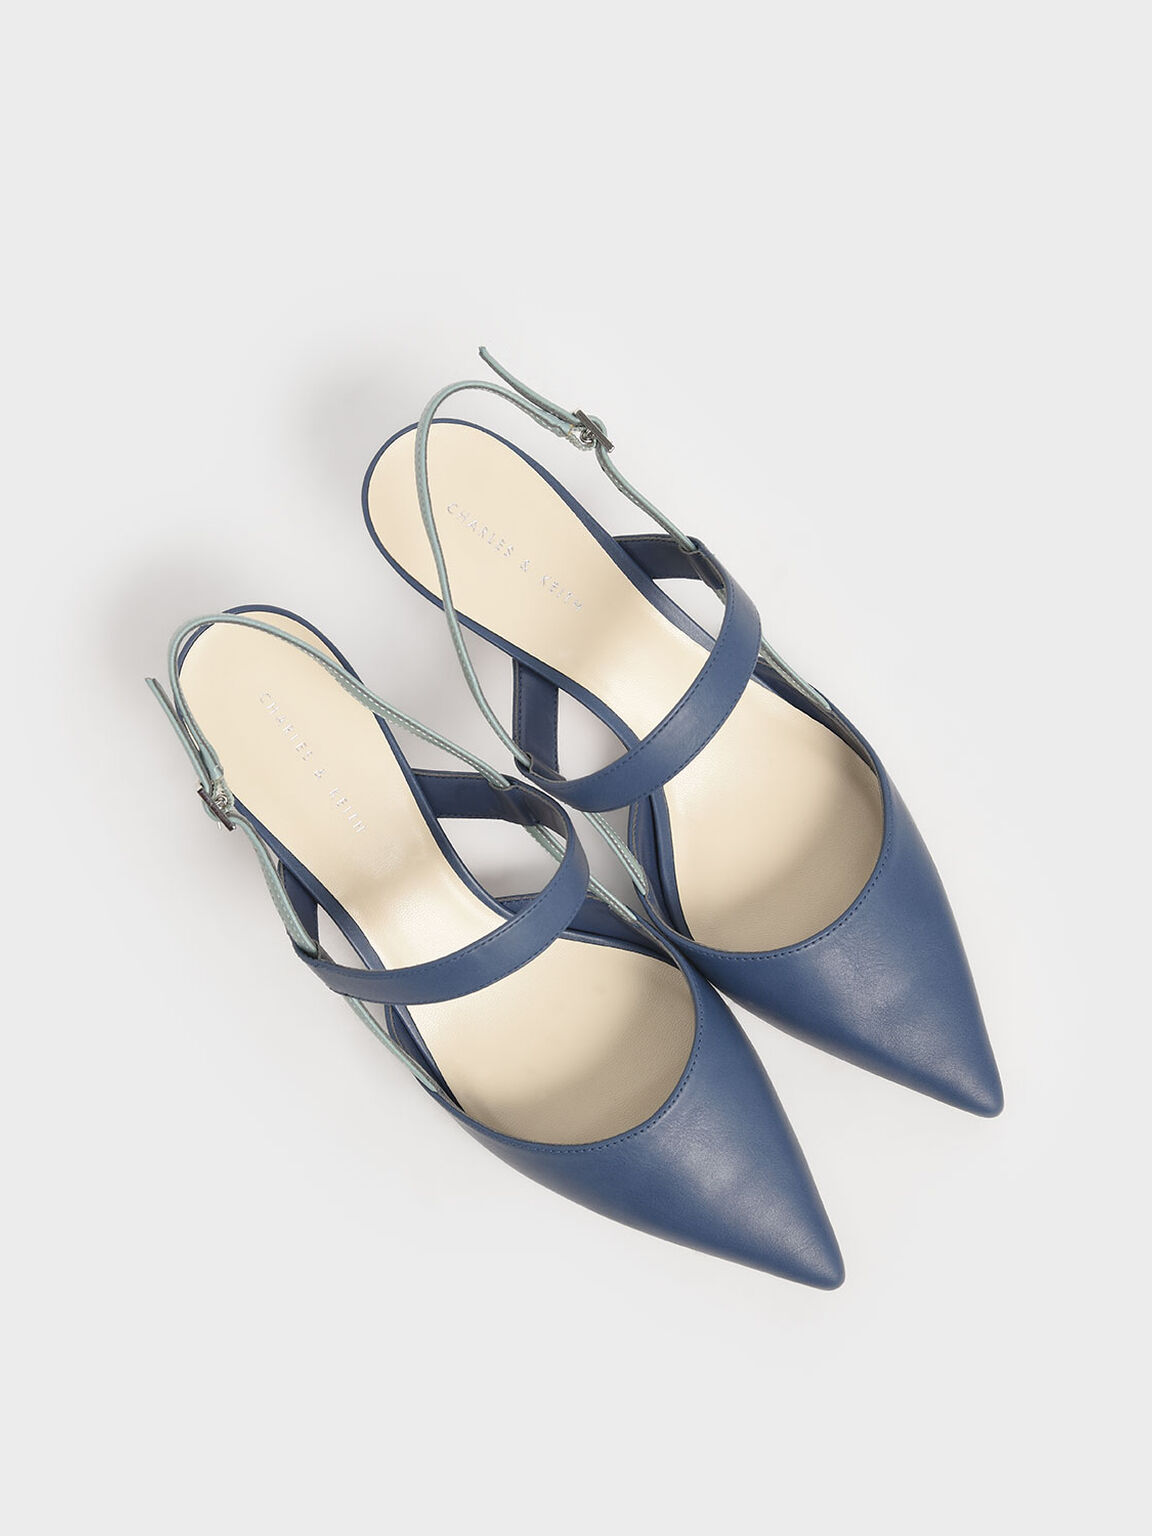 Slingback Kitten Heel Pumps, Blue, hi-res